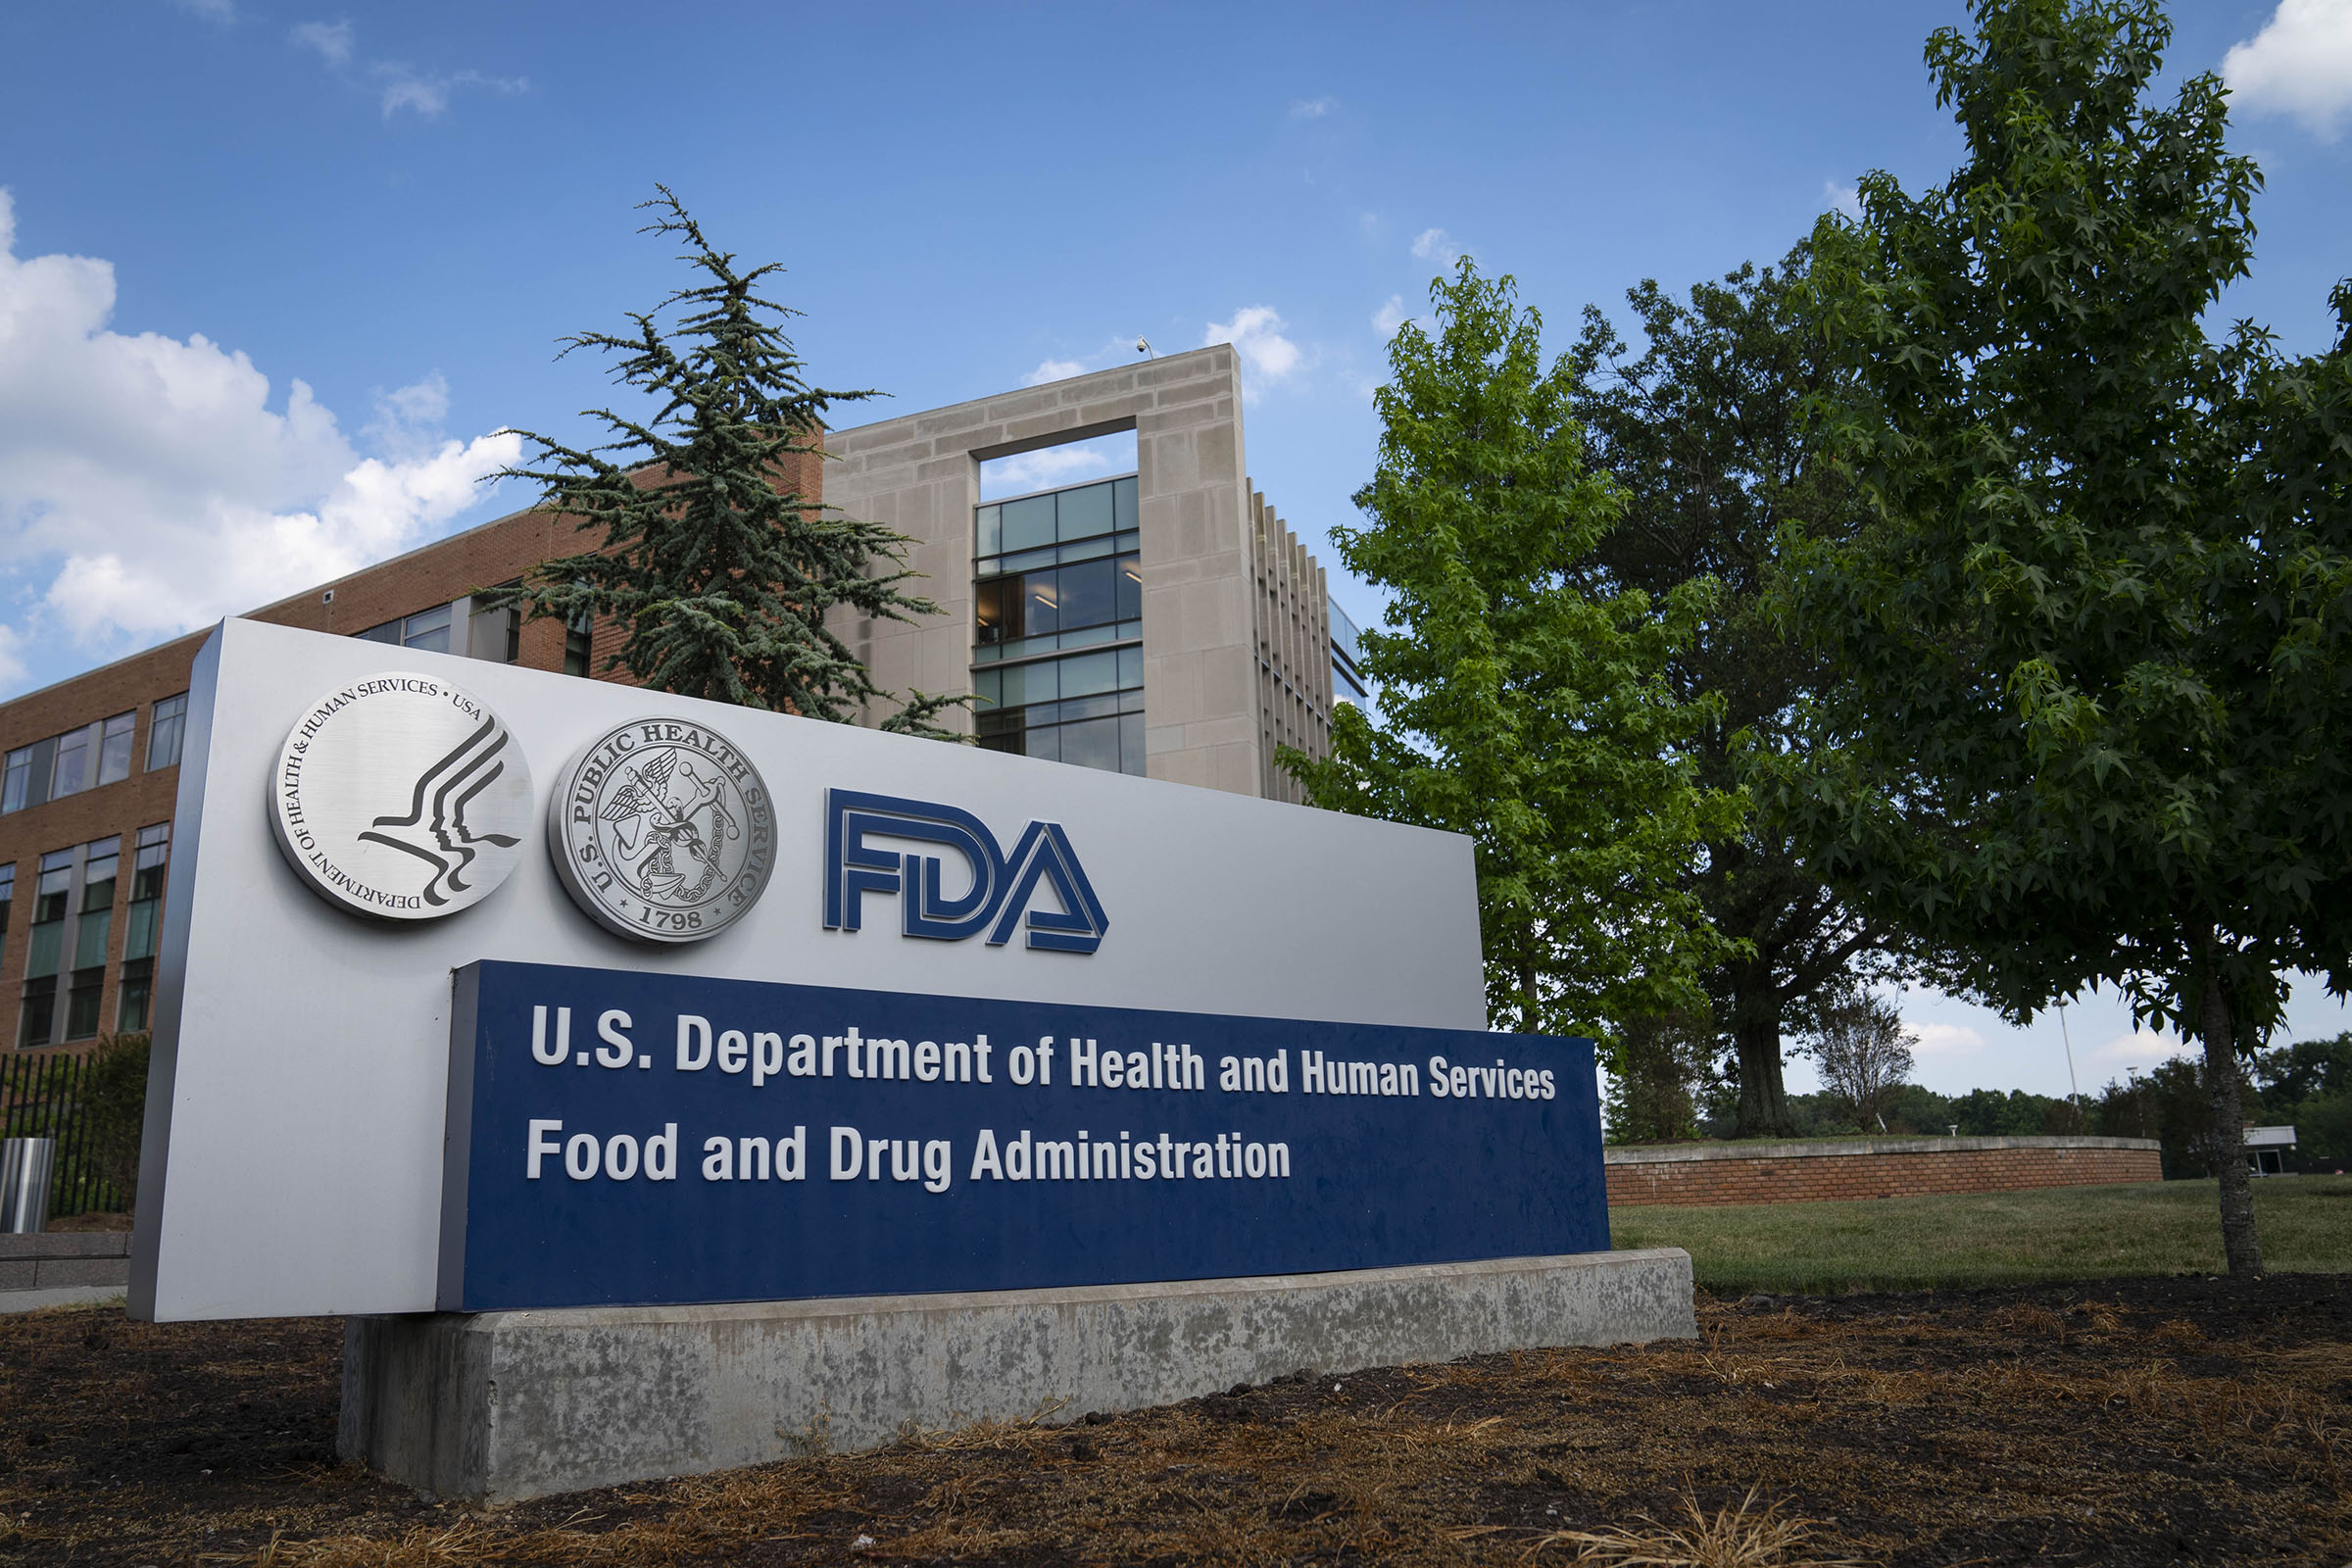 Food And Drug Administration in White Oak, Maryland.